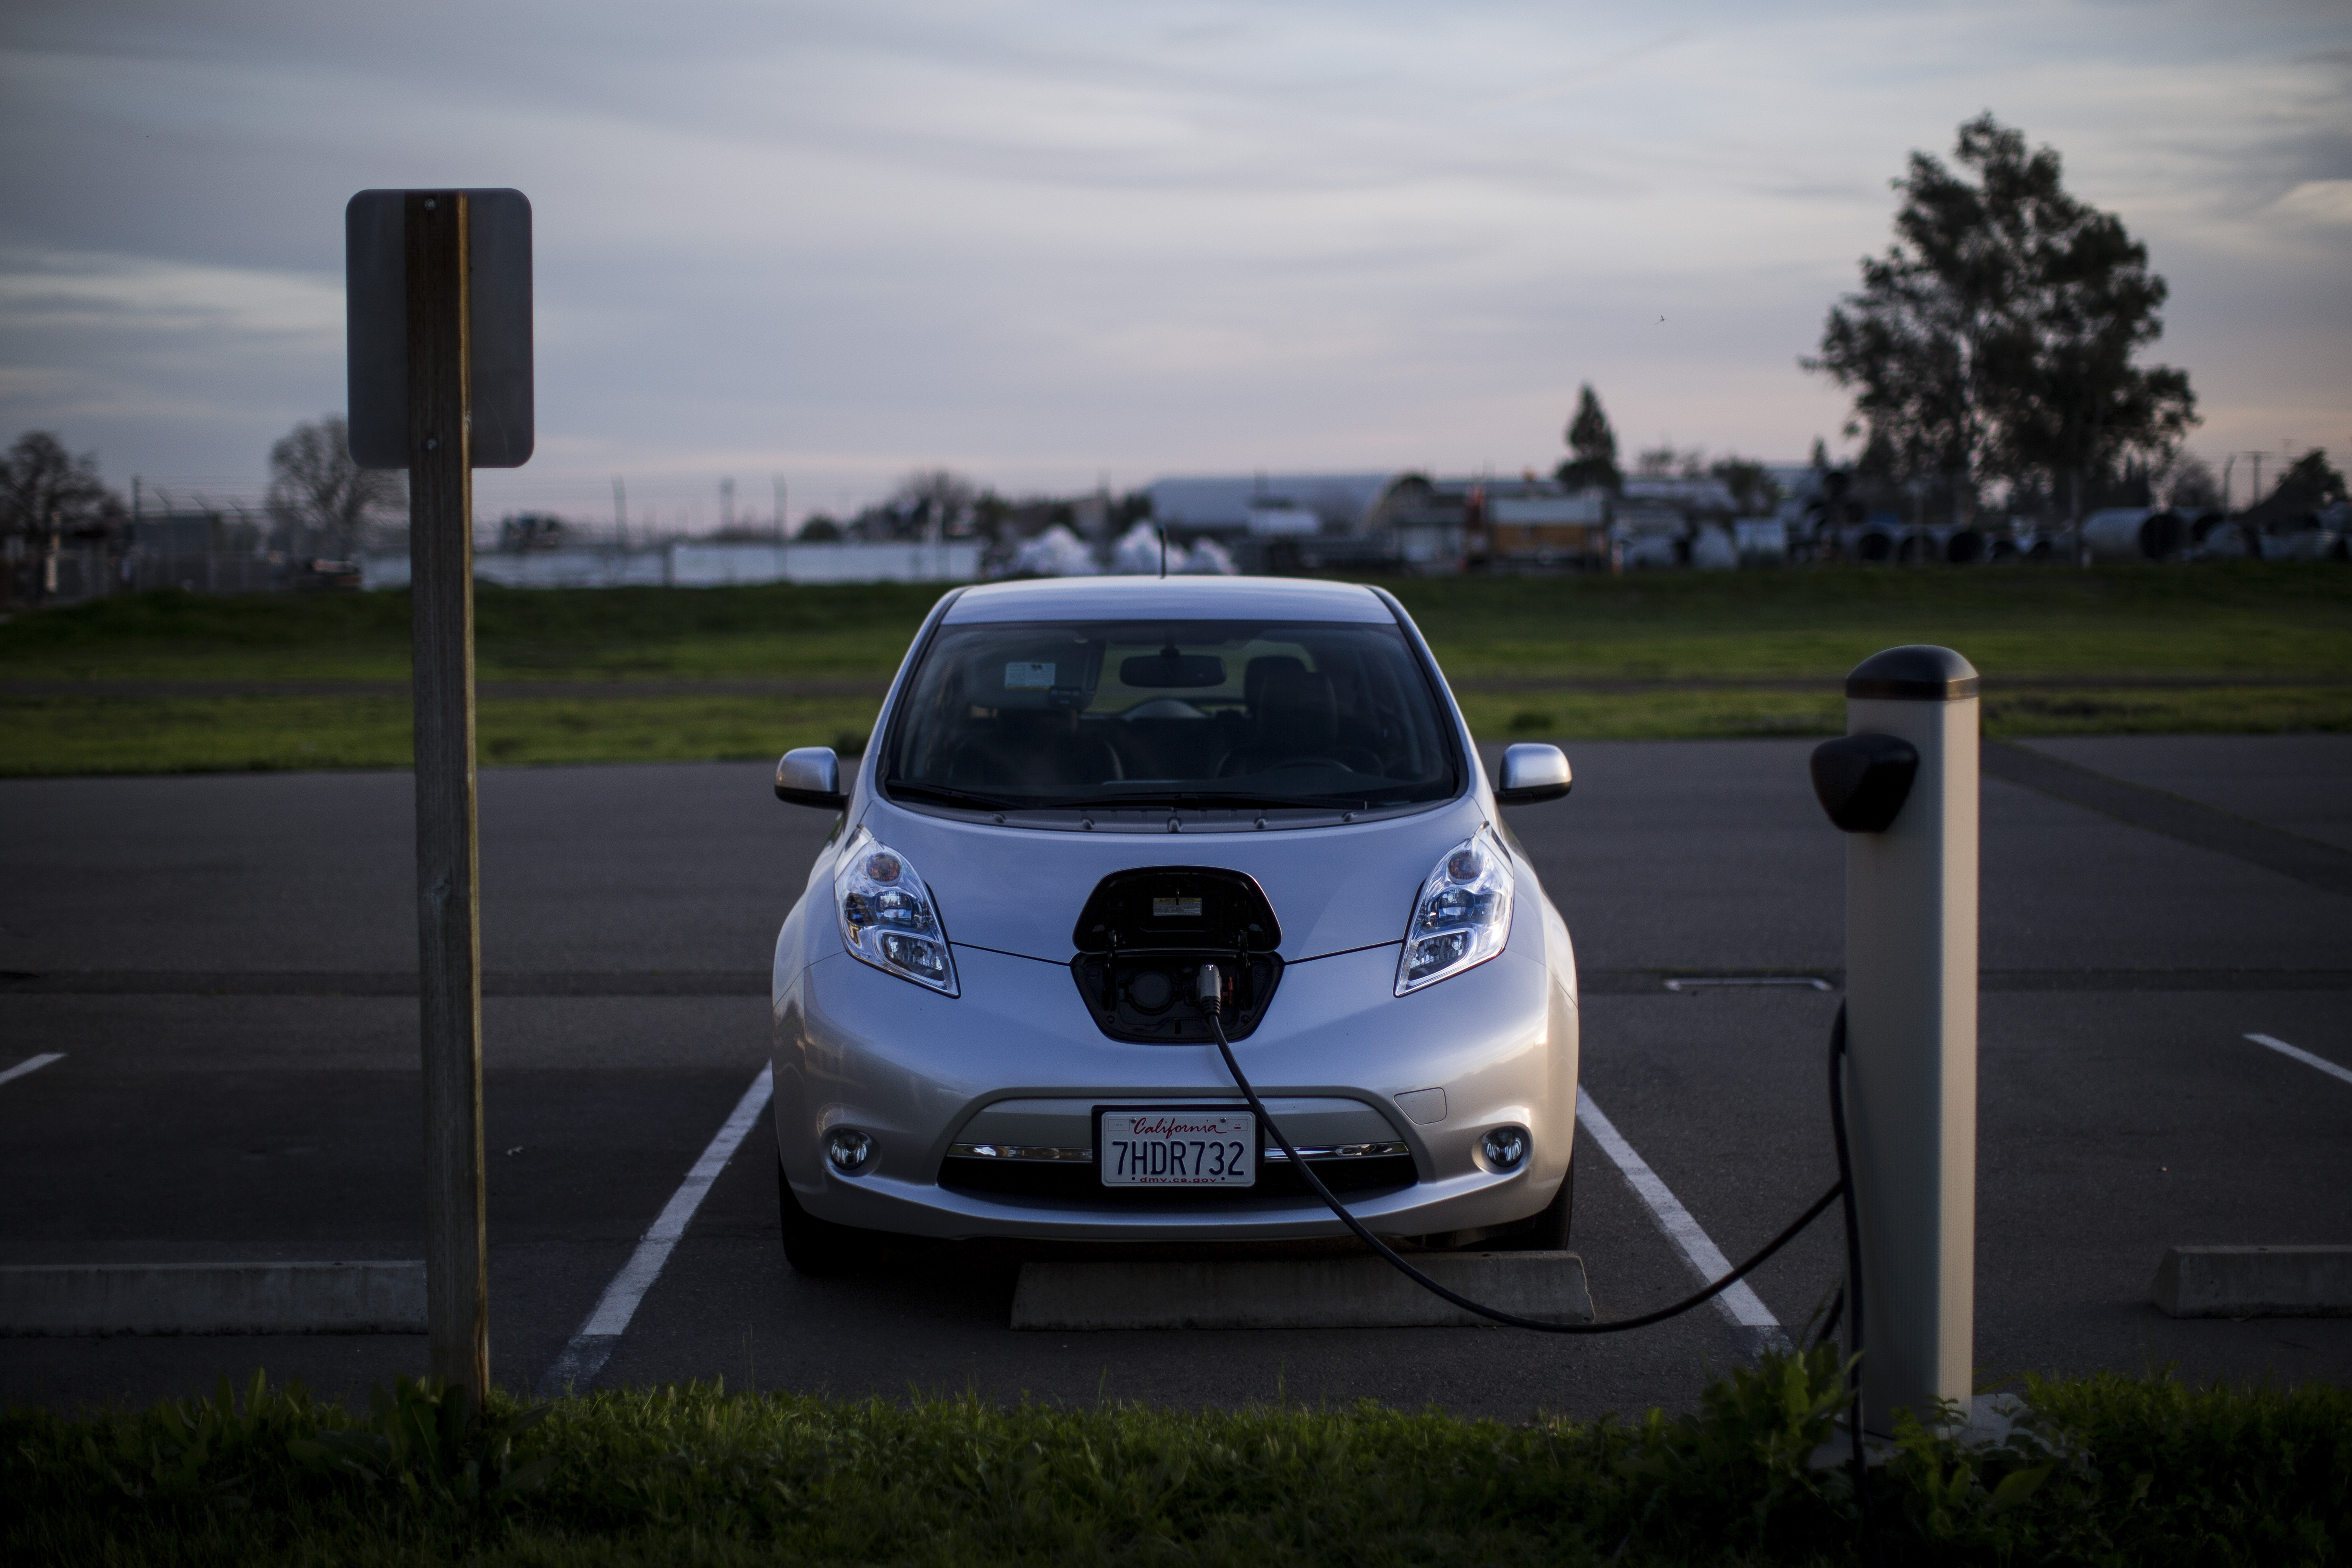 An electric car charges at a station in a parking lot in Sacramento, Calif.